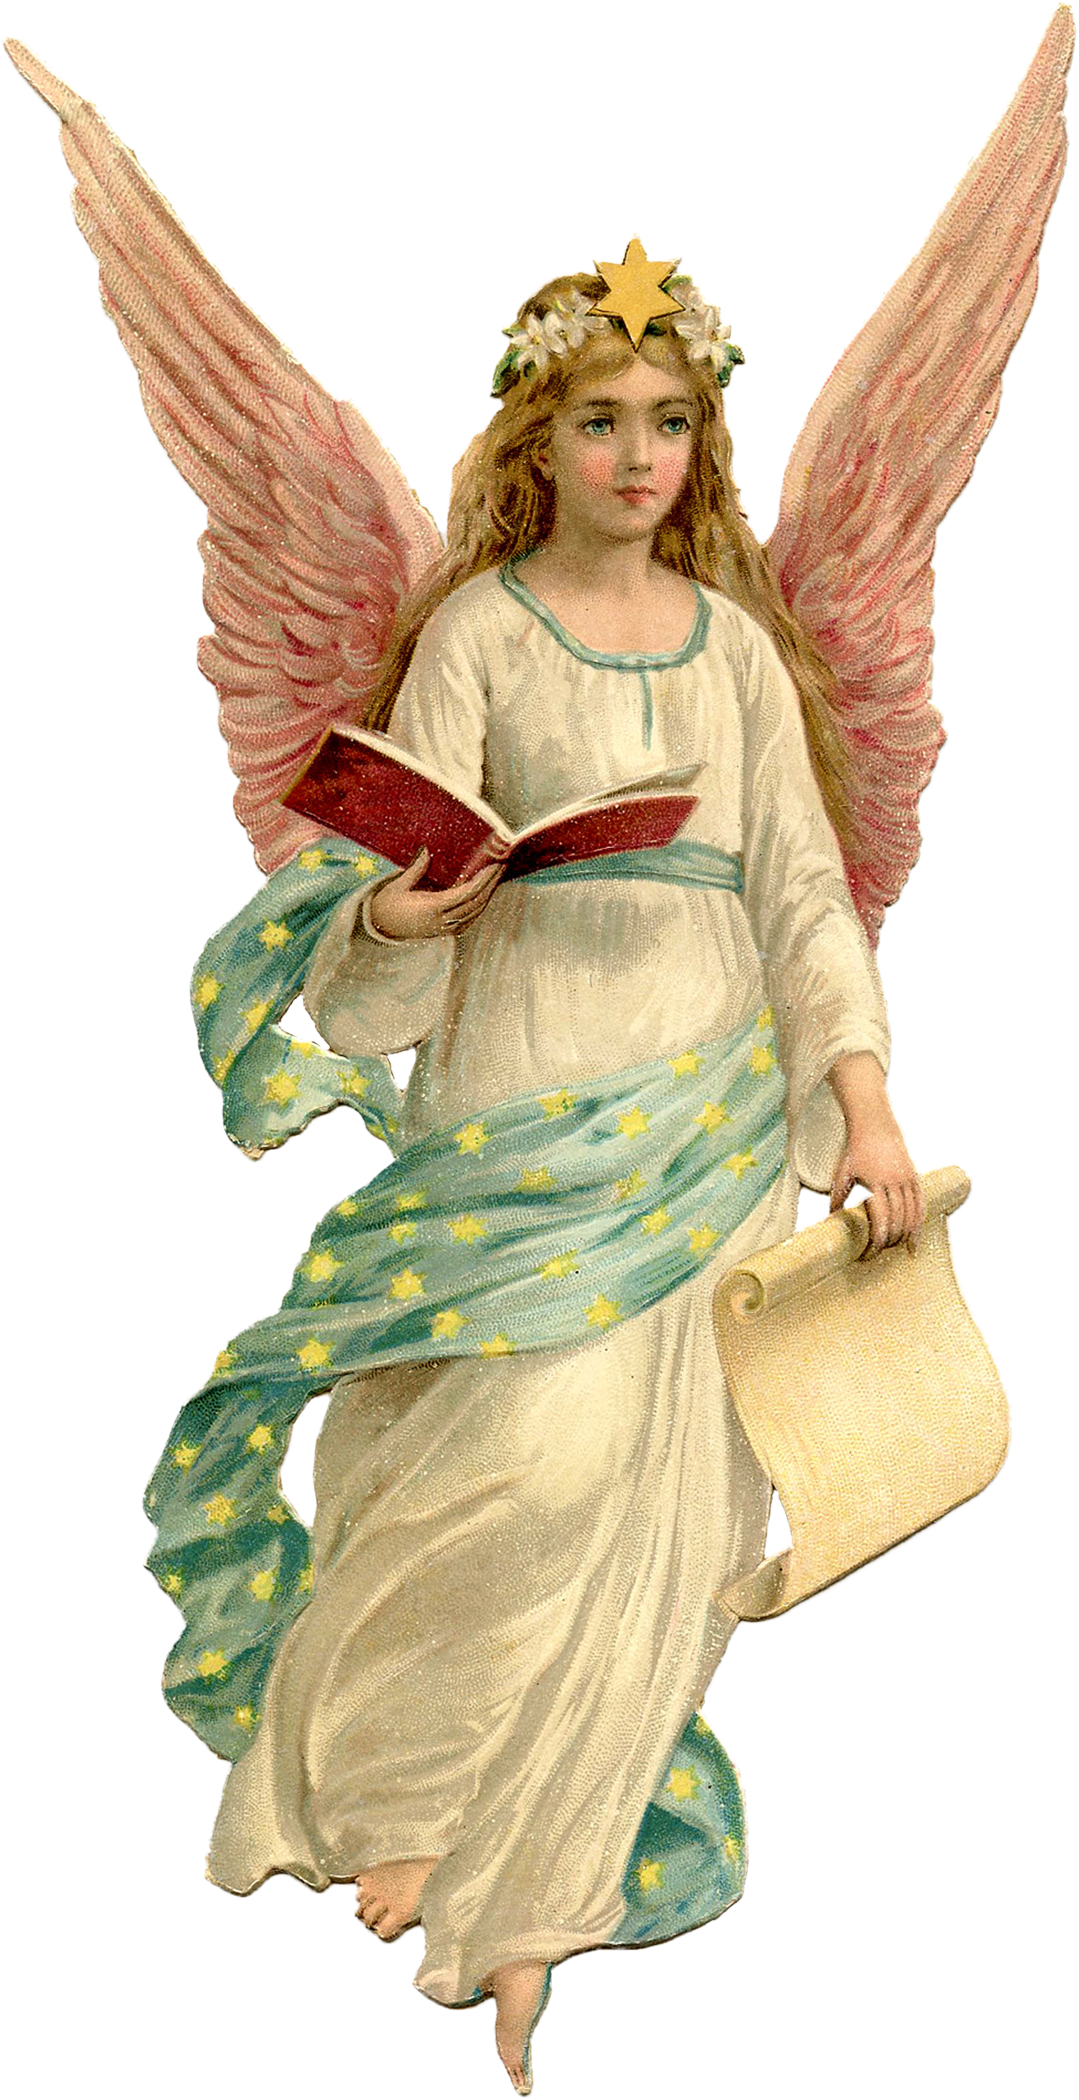 Free Images Person Girl Woman Cute Female Model: Angels Are Among Us